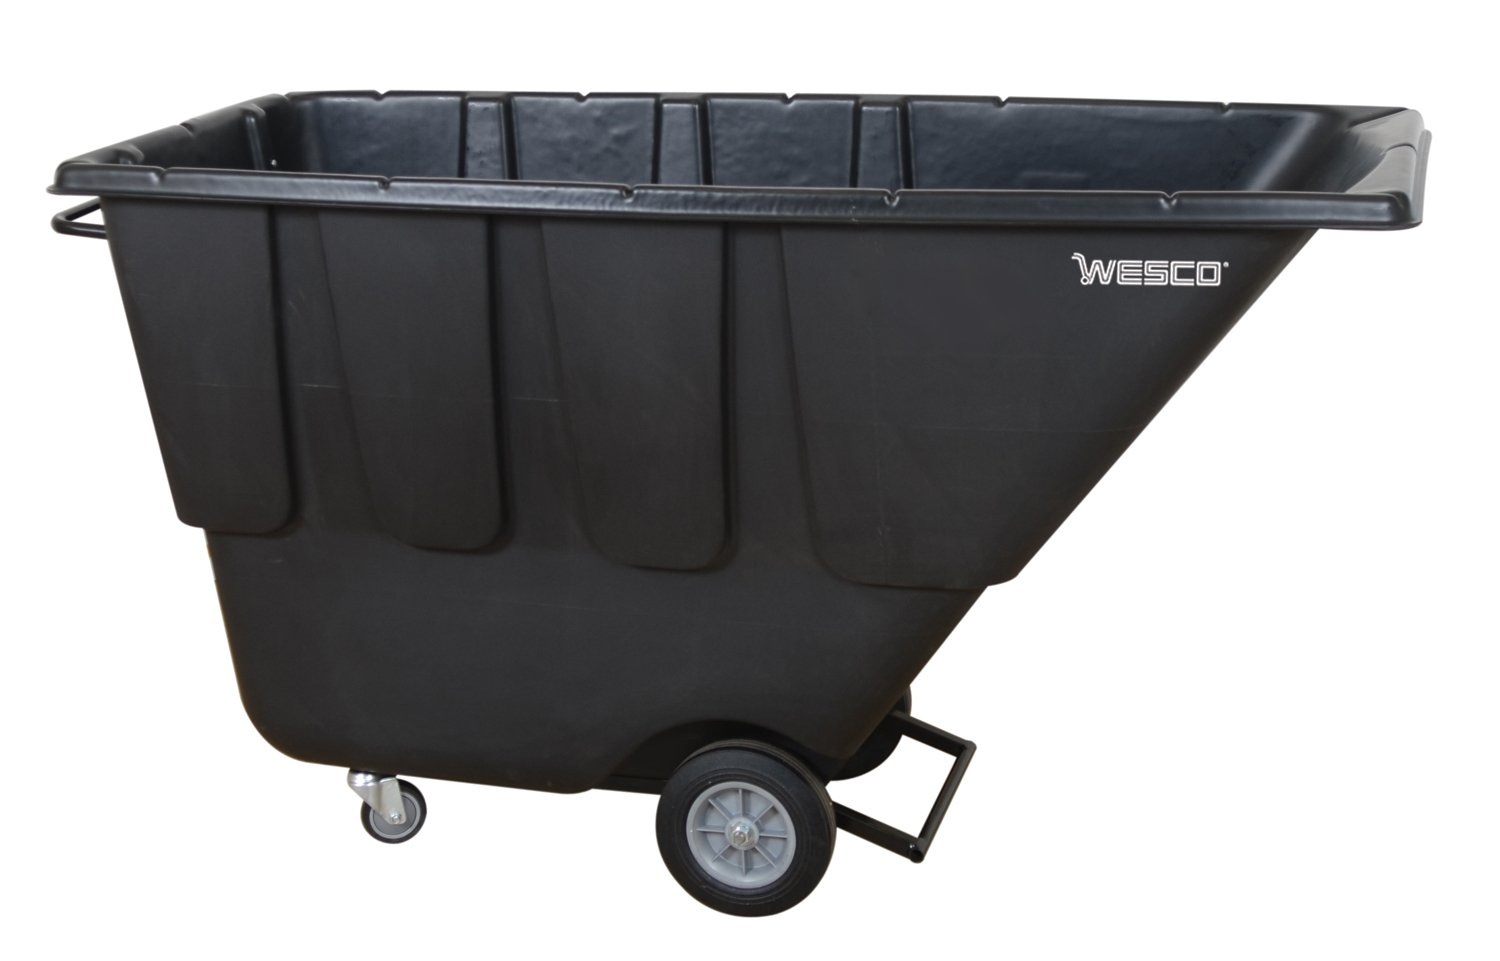 Wesco Industrial Products 272581 Tilt Cart, Utility Duty, 1 cubic yard, 72.5'' Length, 43'' Height, 29.25'' Width